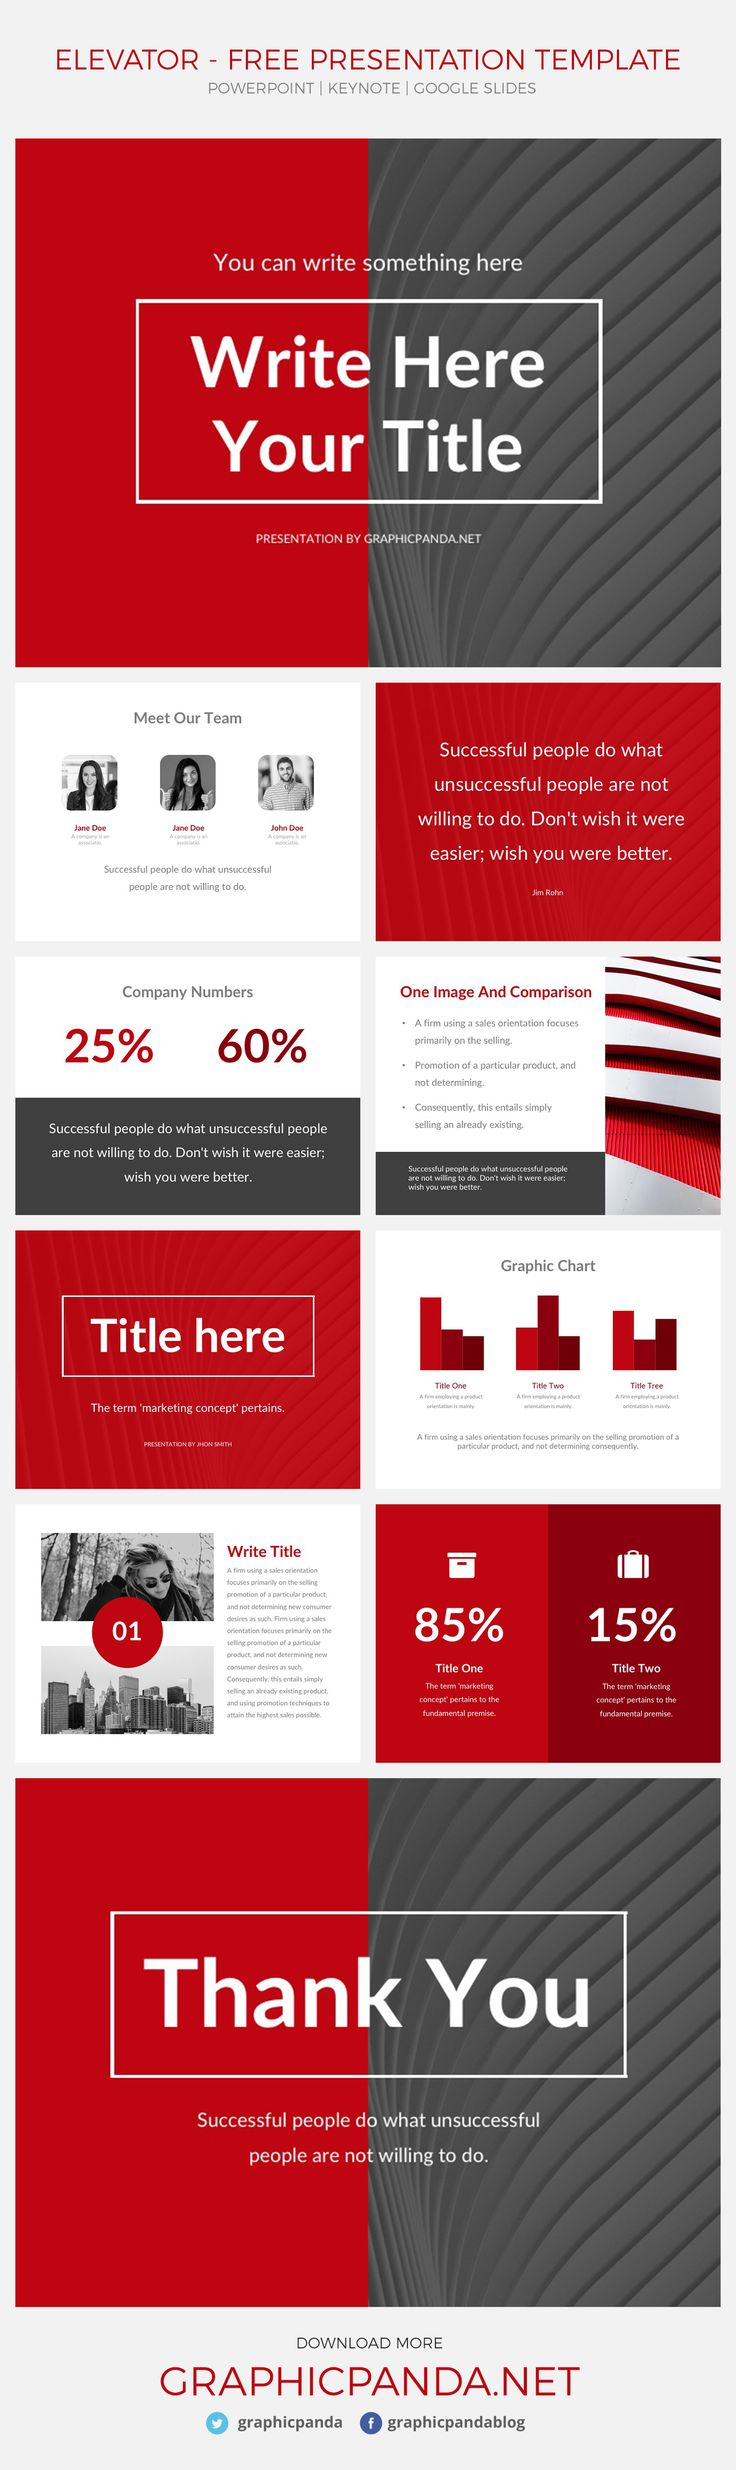 Best FREE POWERPOINT TEMPLATES FREE KEYNOTES THEMES FREE GOOGLE - Fresh free apple motion template scheme